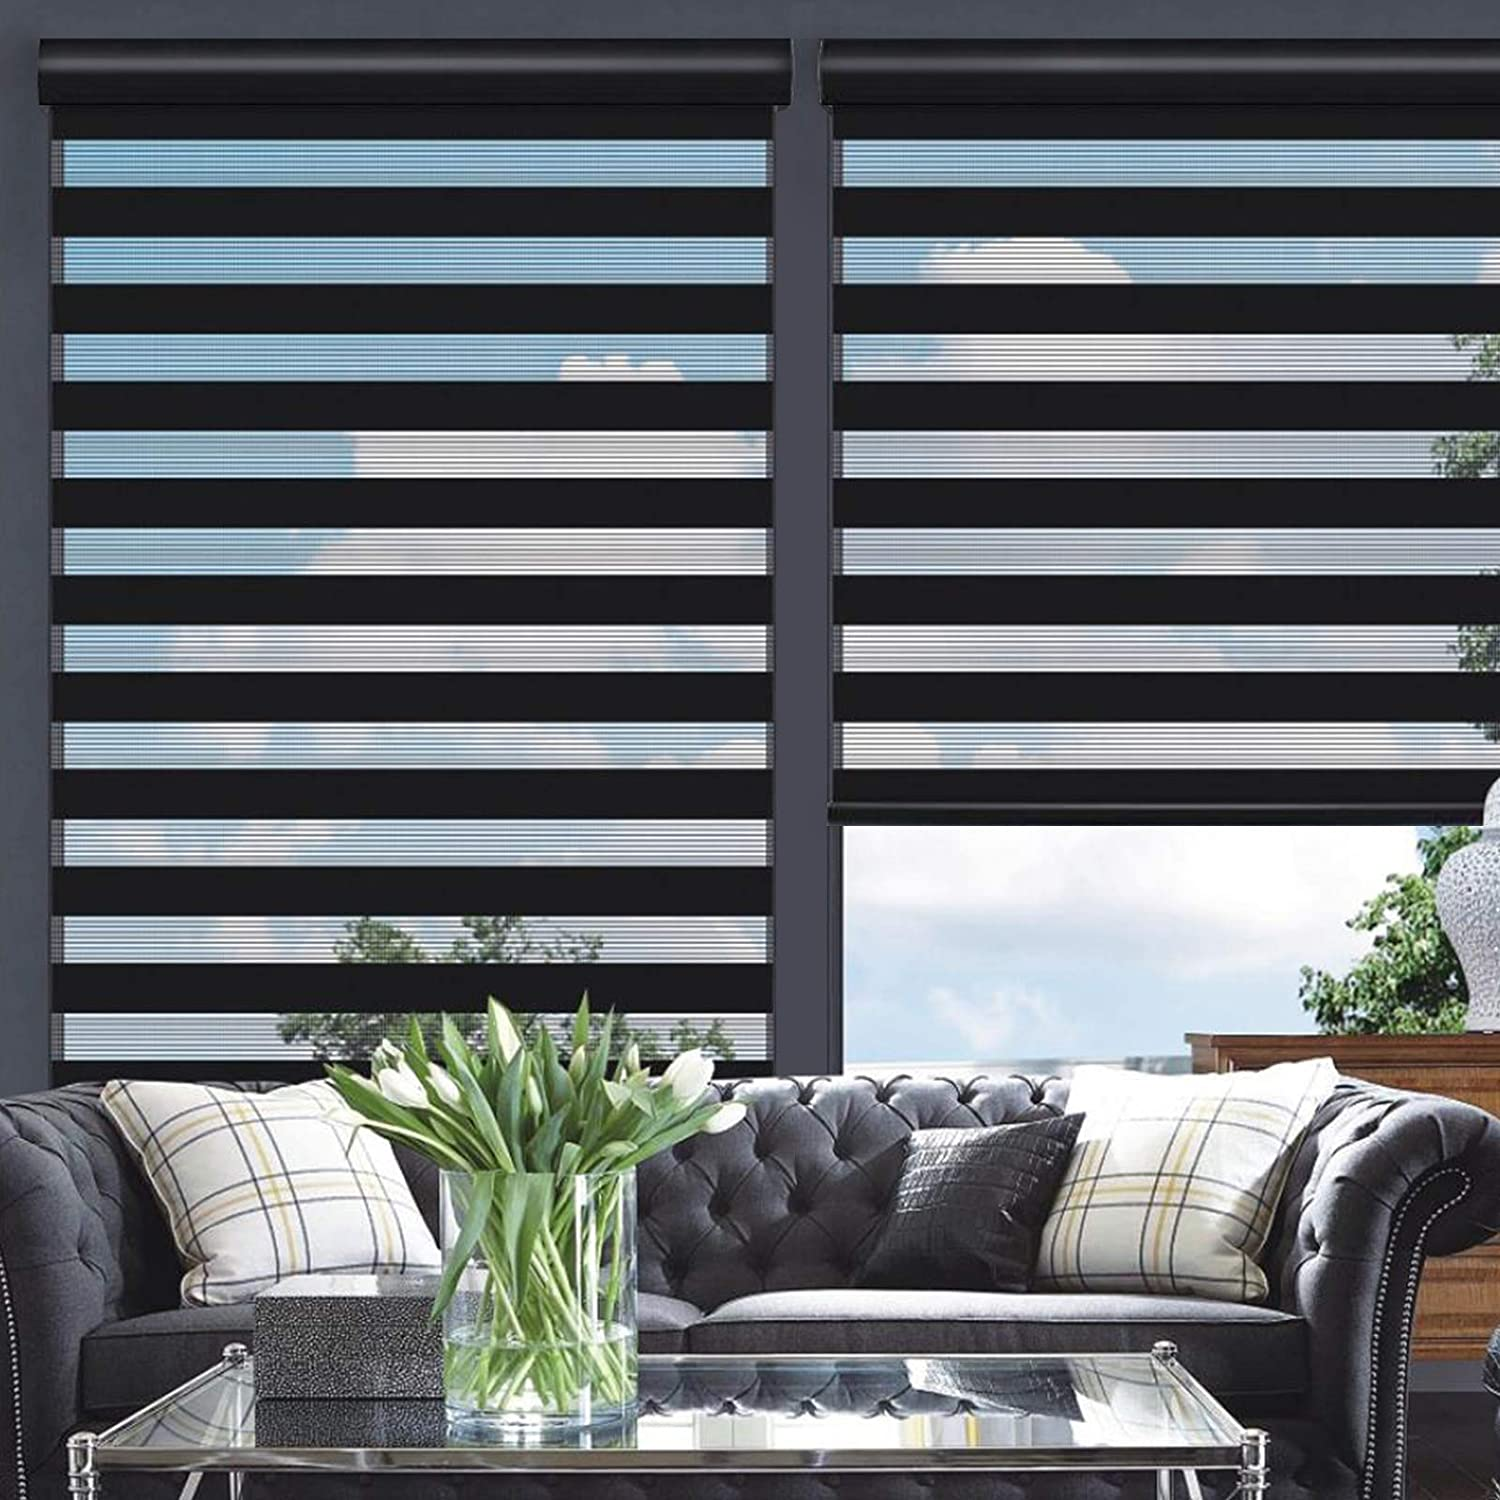 Changshade Cordless Zebra Roller Shade with Valance, Double Layered Window Blind for Day and Night, Light Filtering Window Treatment with Mesh and Opaque Fabric, 24 inches Wide, Black RBS24BK72A